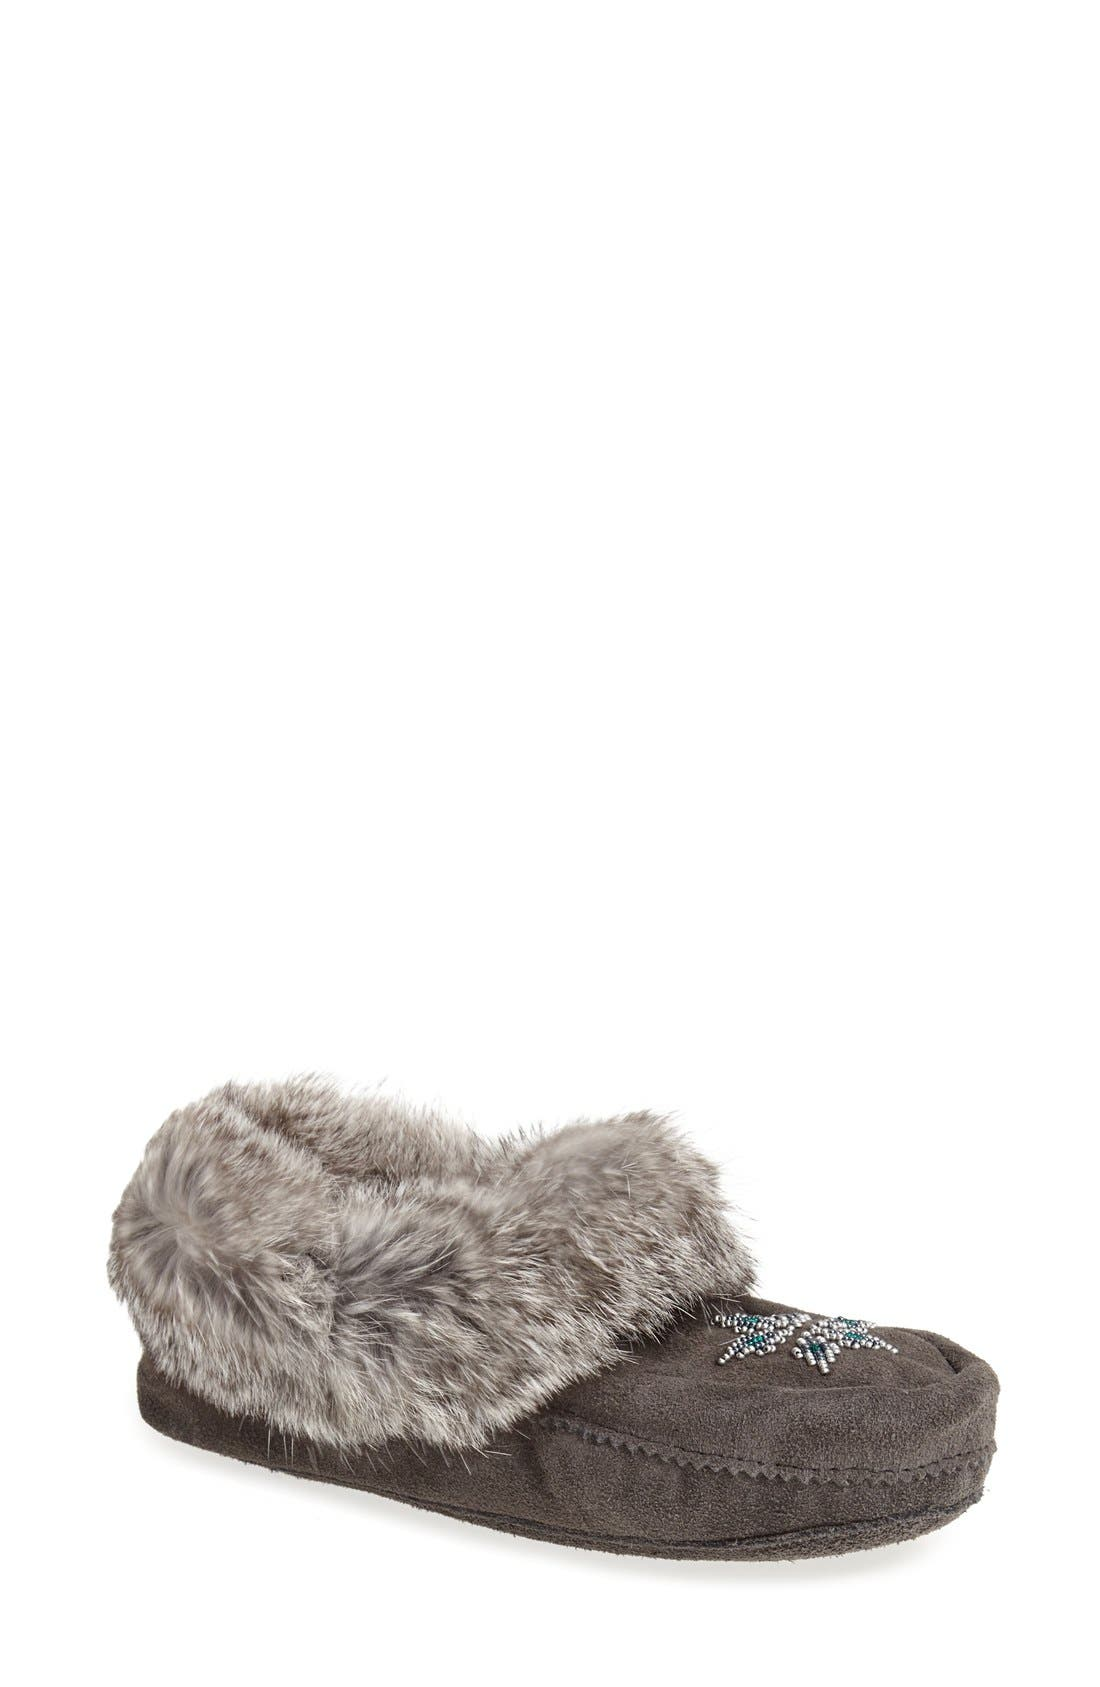 Manitobah Mukluks 'Kanada' Genuine Rabbit Fur & Suede Moccasin Slipper (Women)